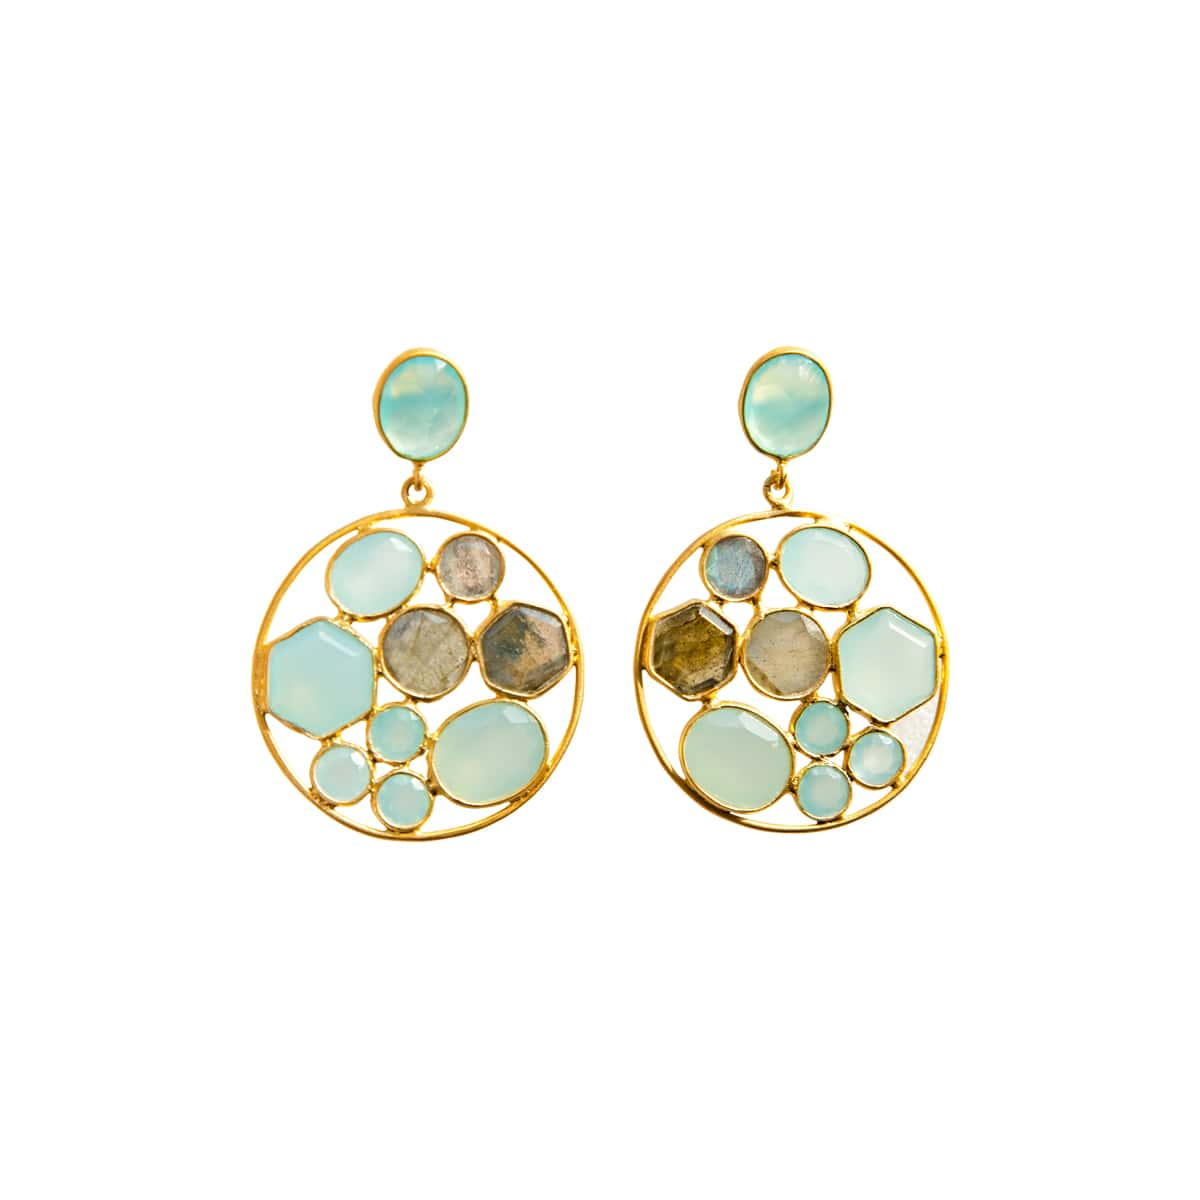 Aqua Chalcedony Statement Cocktail Earrings